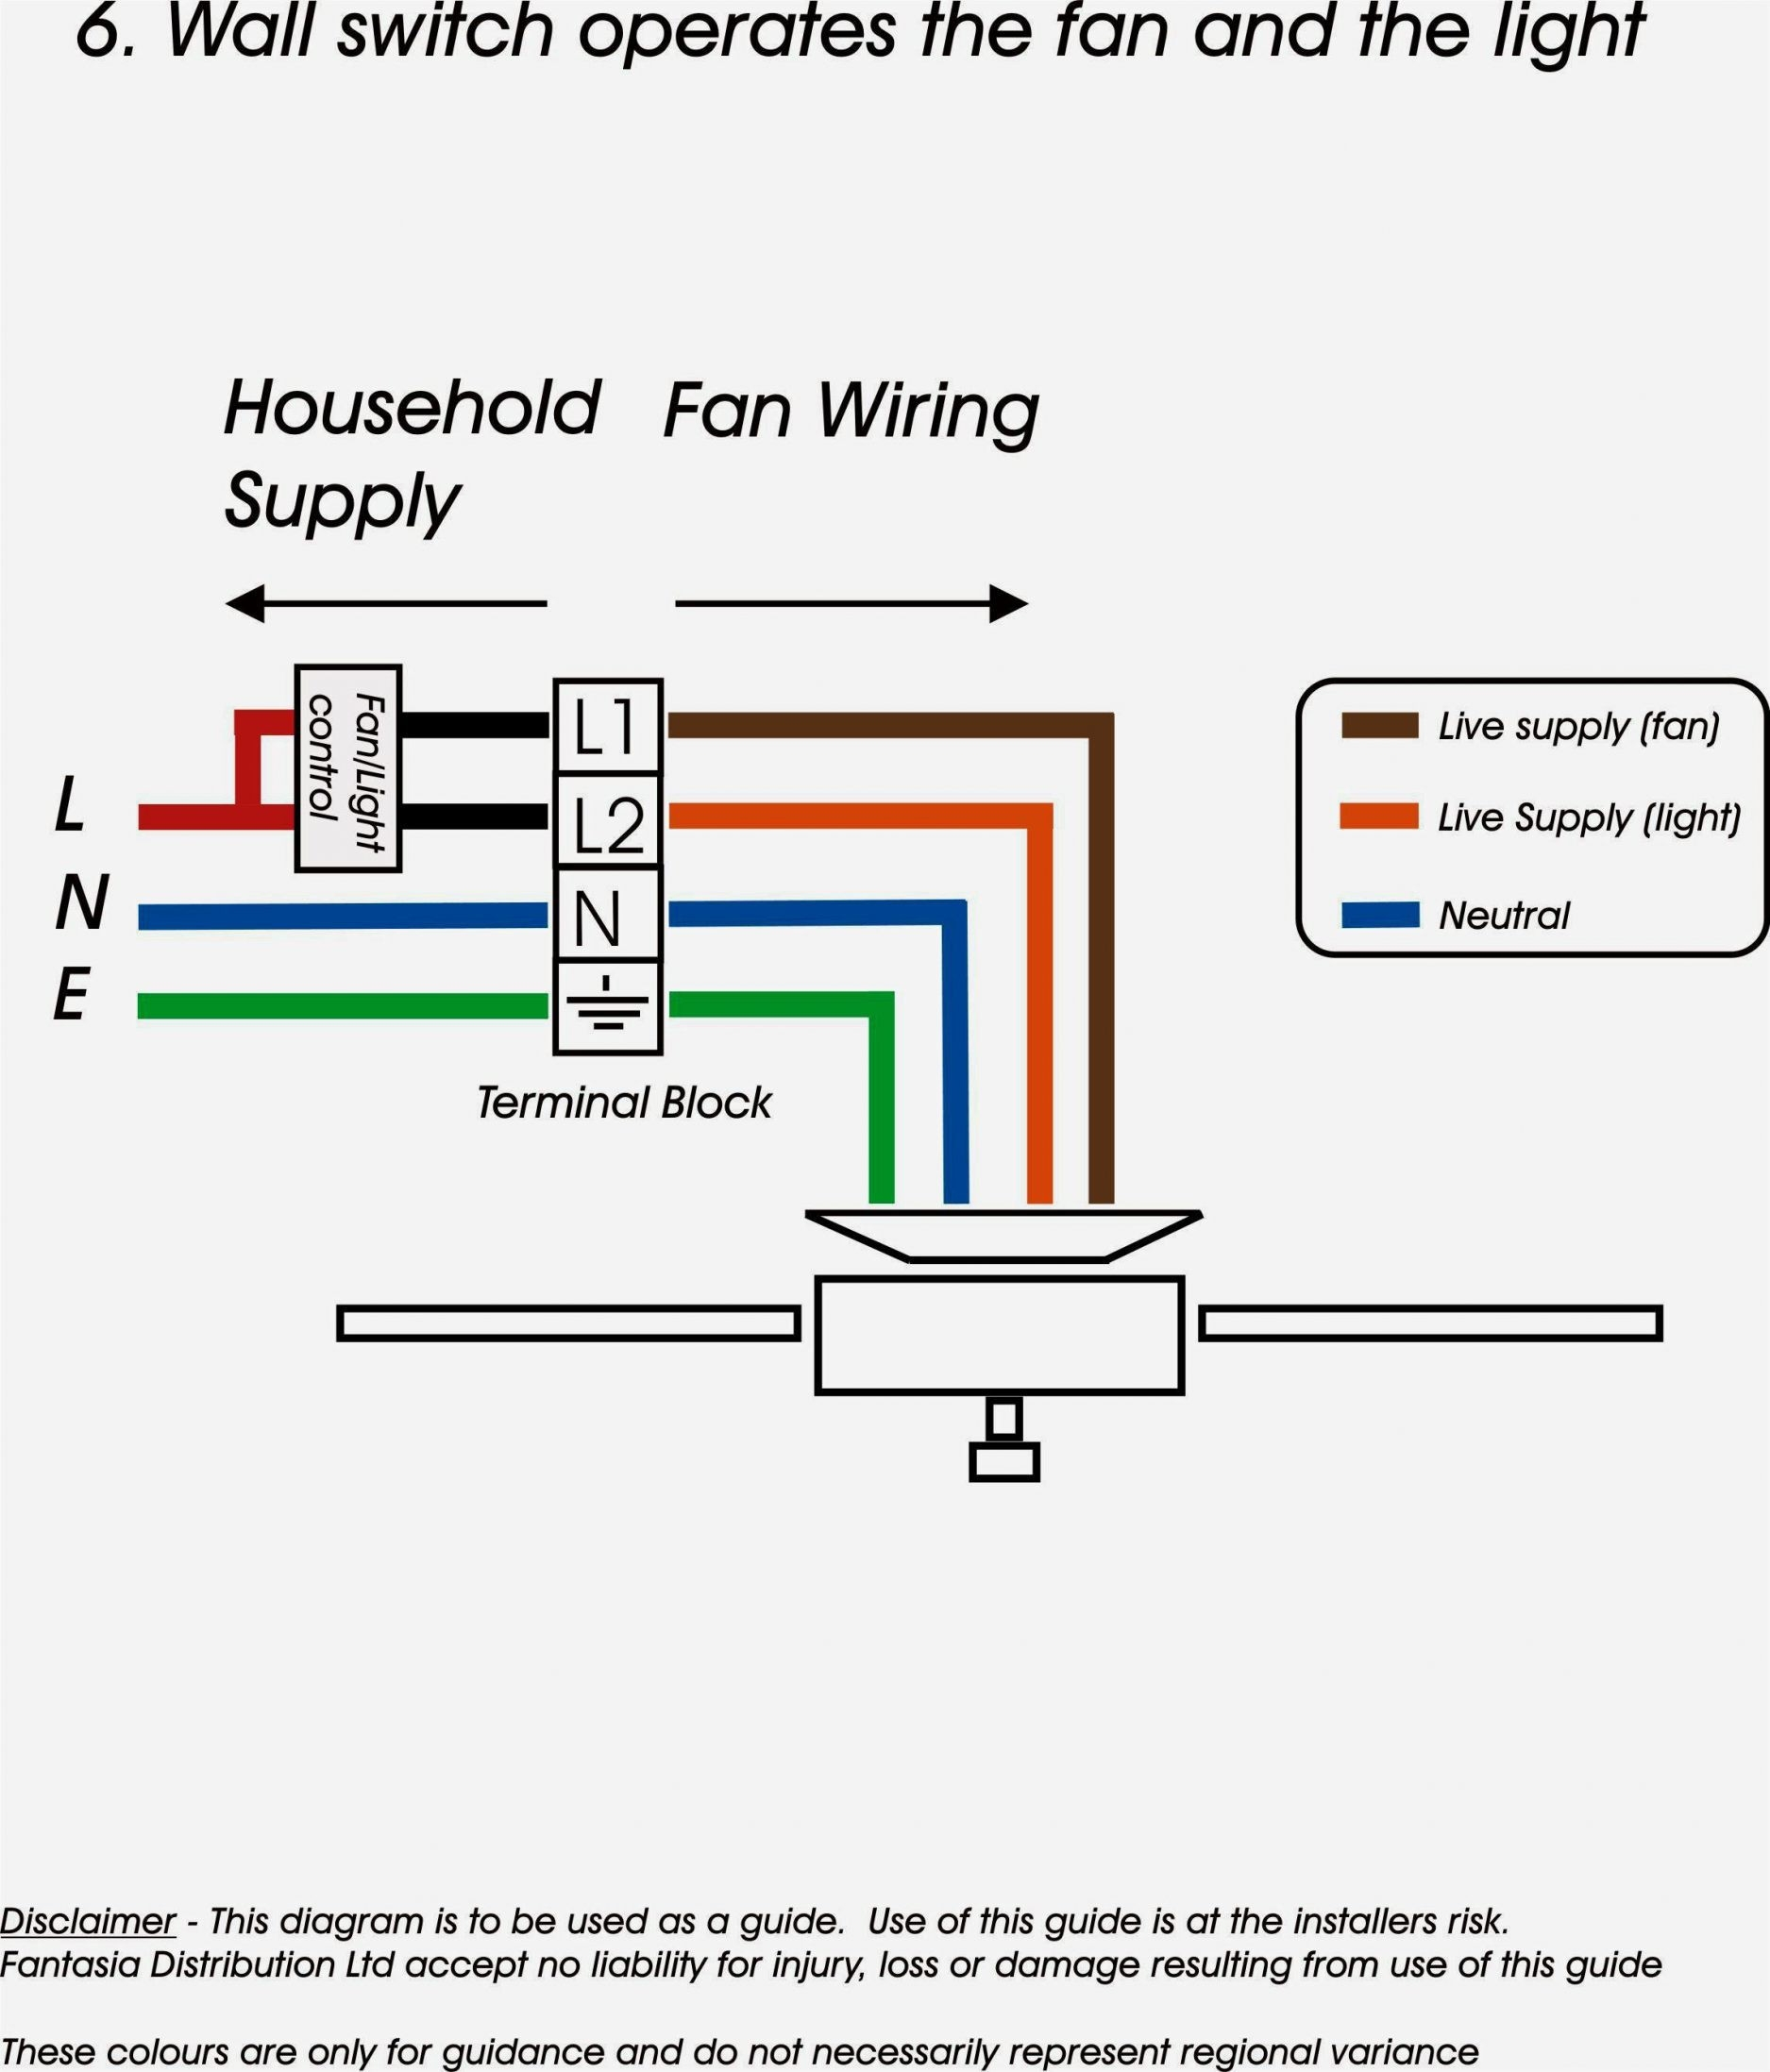 fulham workhorse ballast wiring diagram Download-ballast wiring diagram new slimline diagrams of fulham workhorse 2 rh natebird me 2 Lamp Ballast Wiring Diagram 2 Lamp Ballast Wiring Diagram 11-o